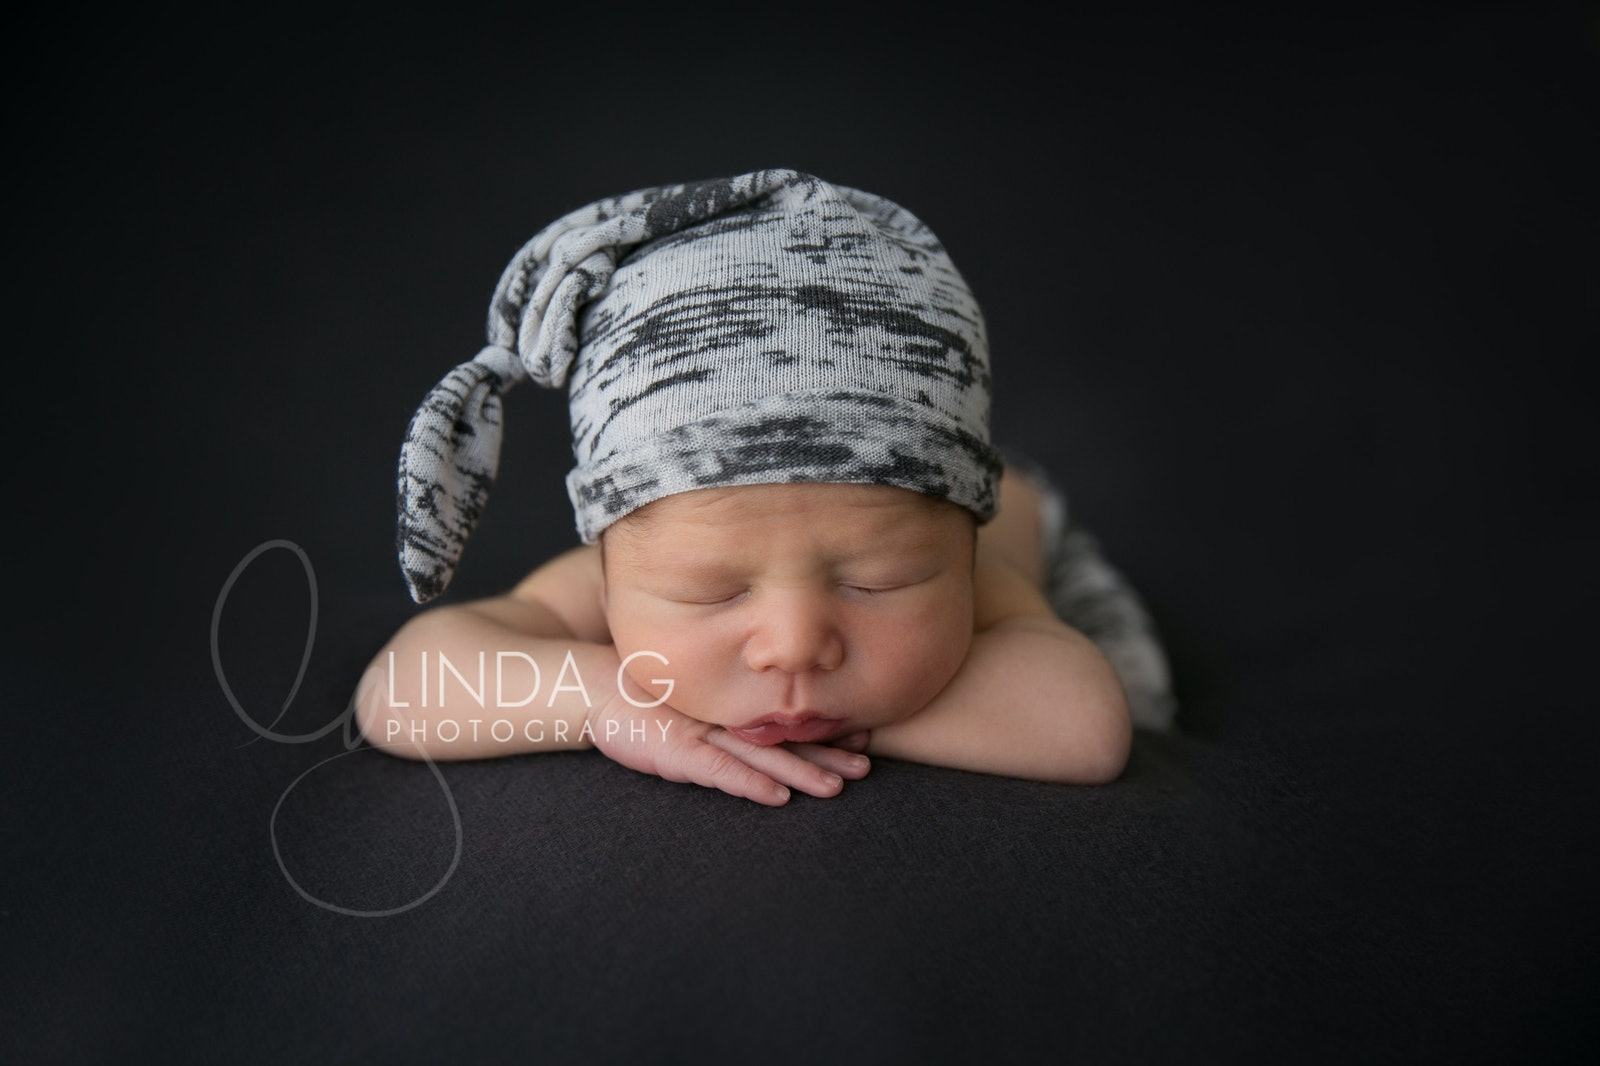 award winning sydney inner west newborn photographer 3